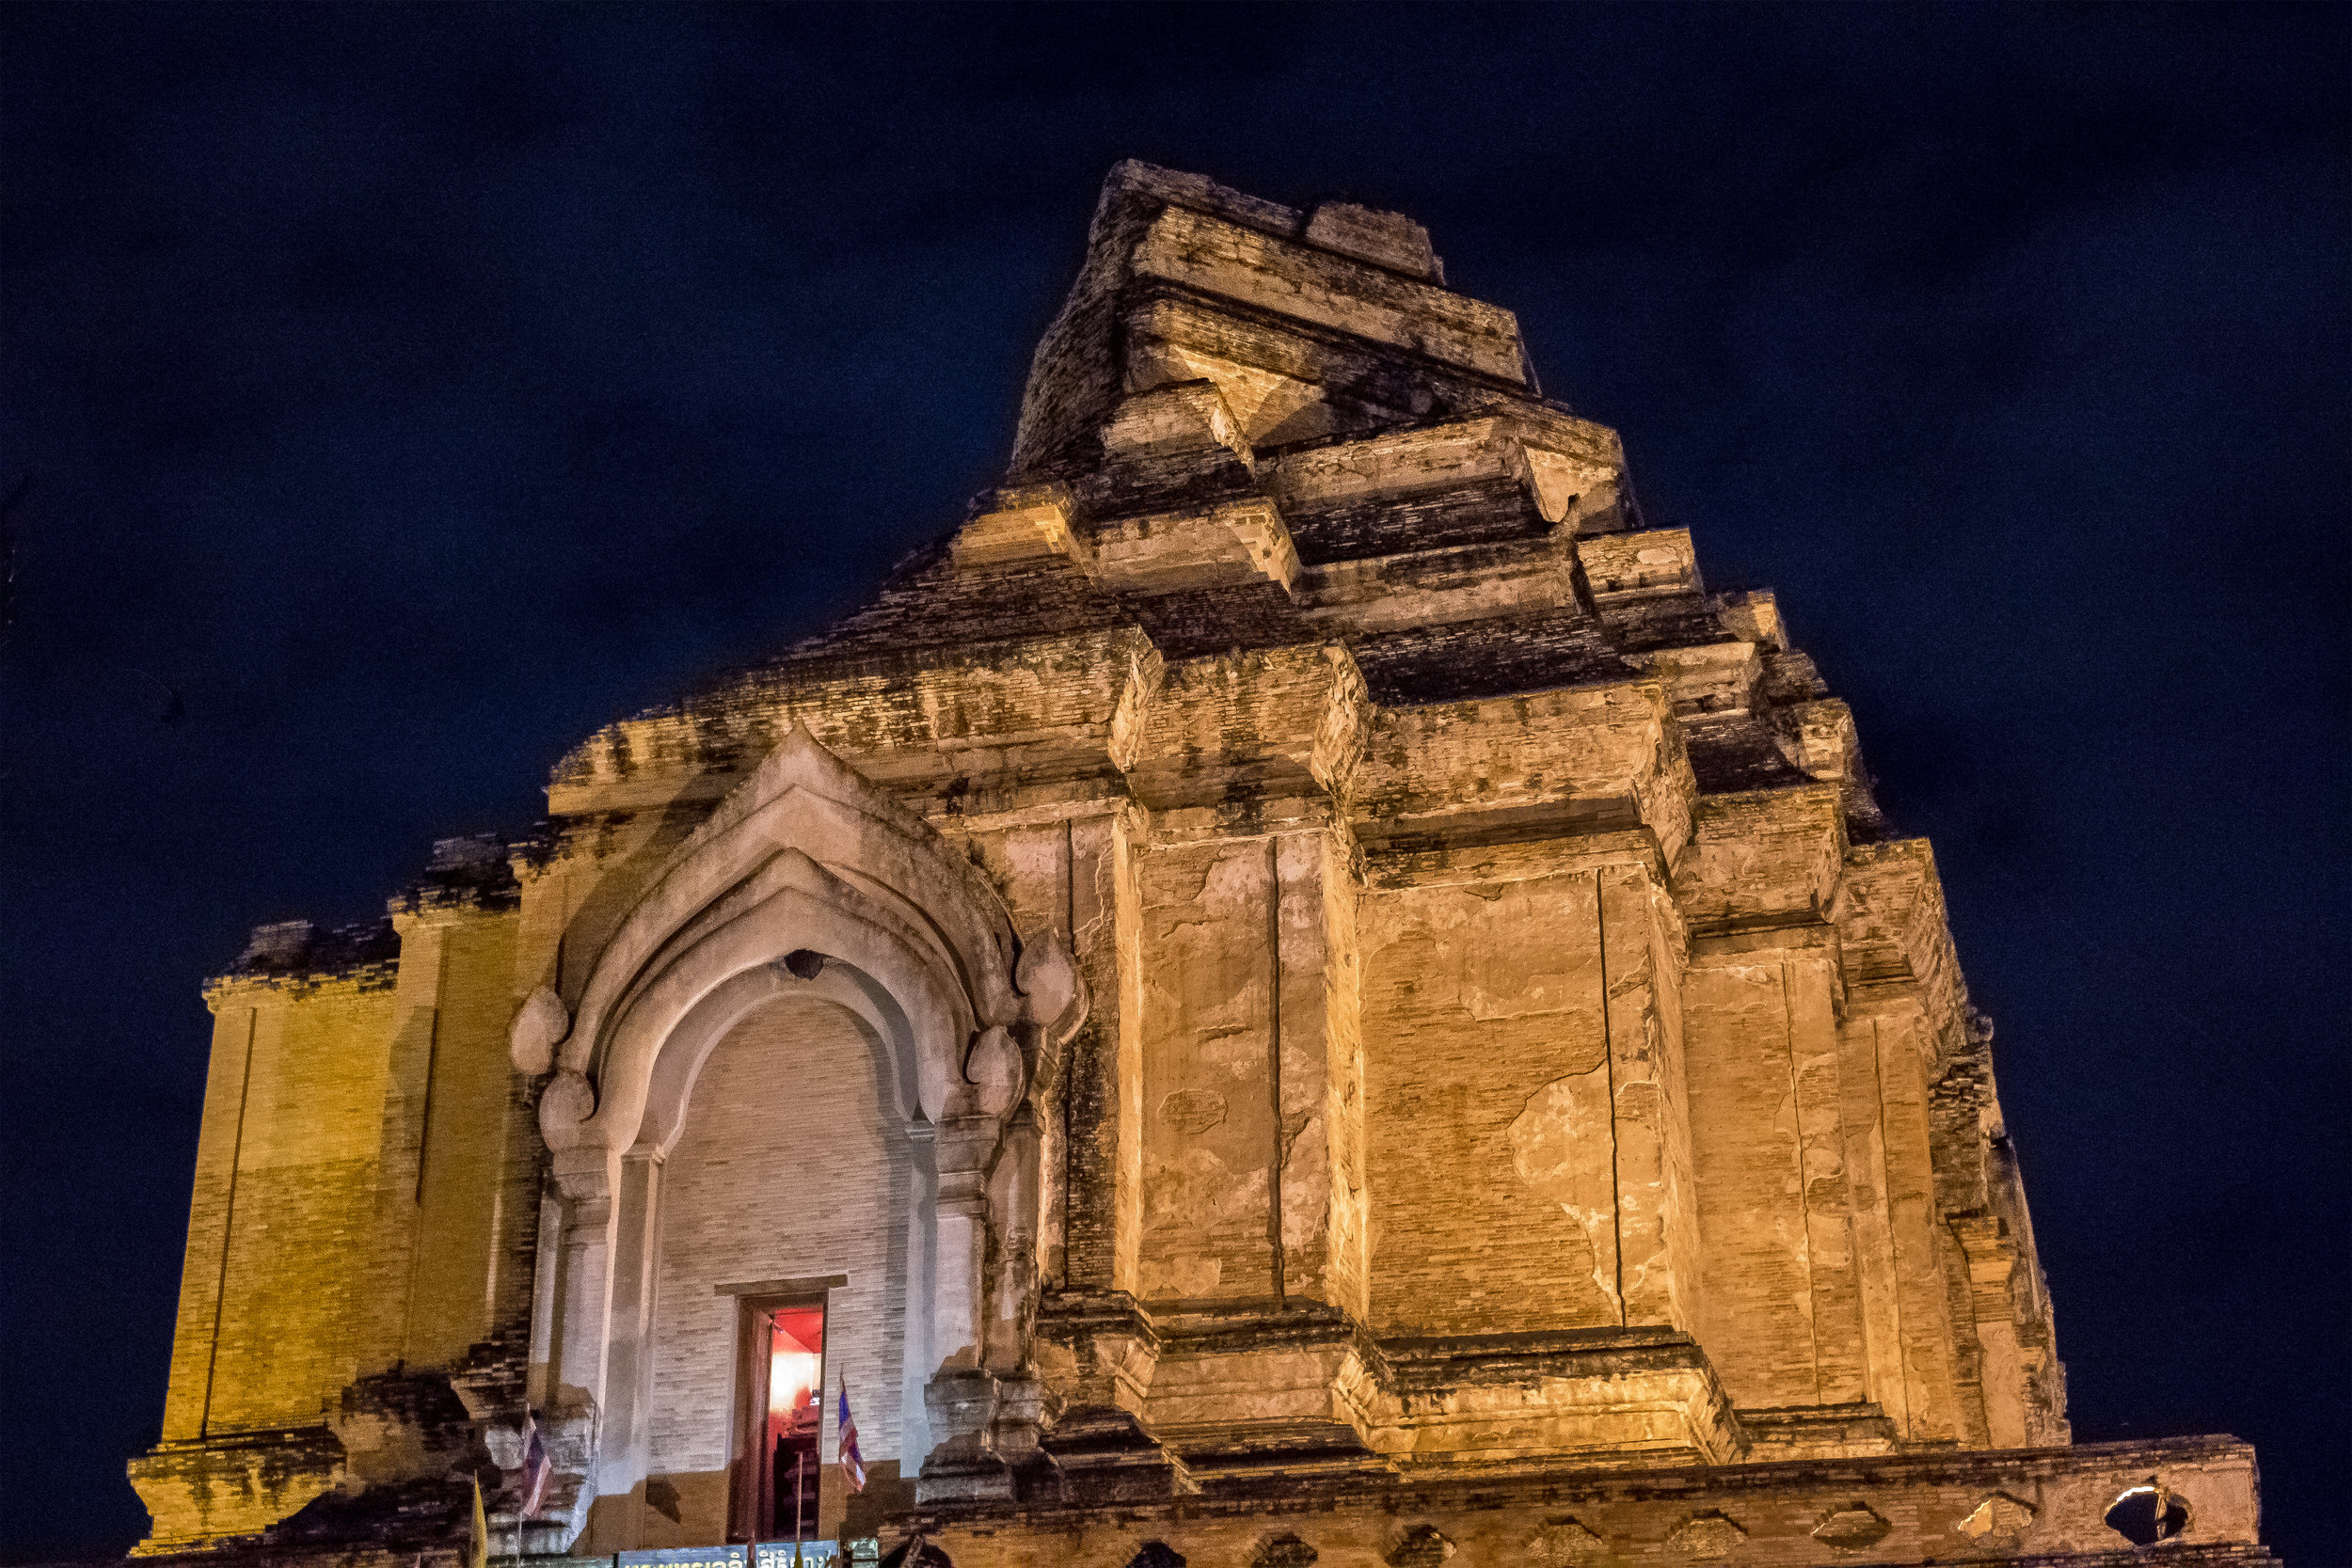 Wat Chedi Luang at night, a UNESCO World Heritage site, and oldest temple in Chiang Mai